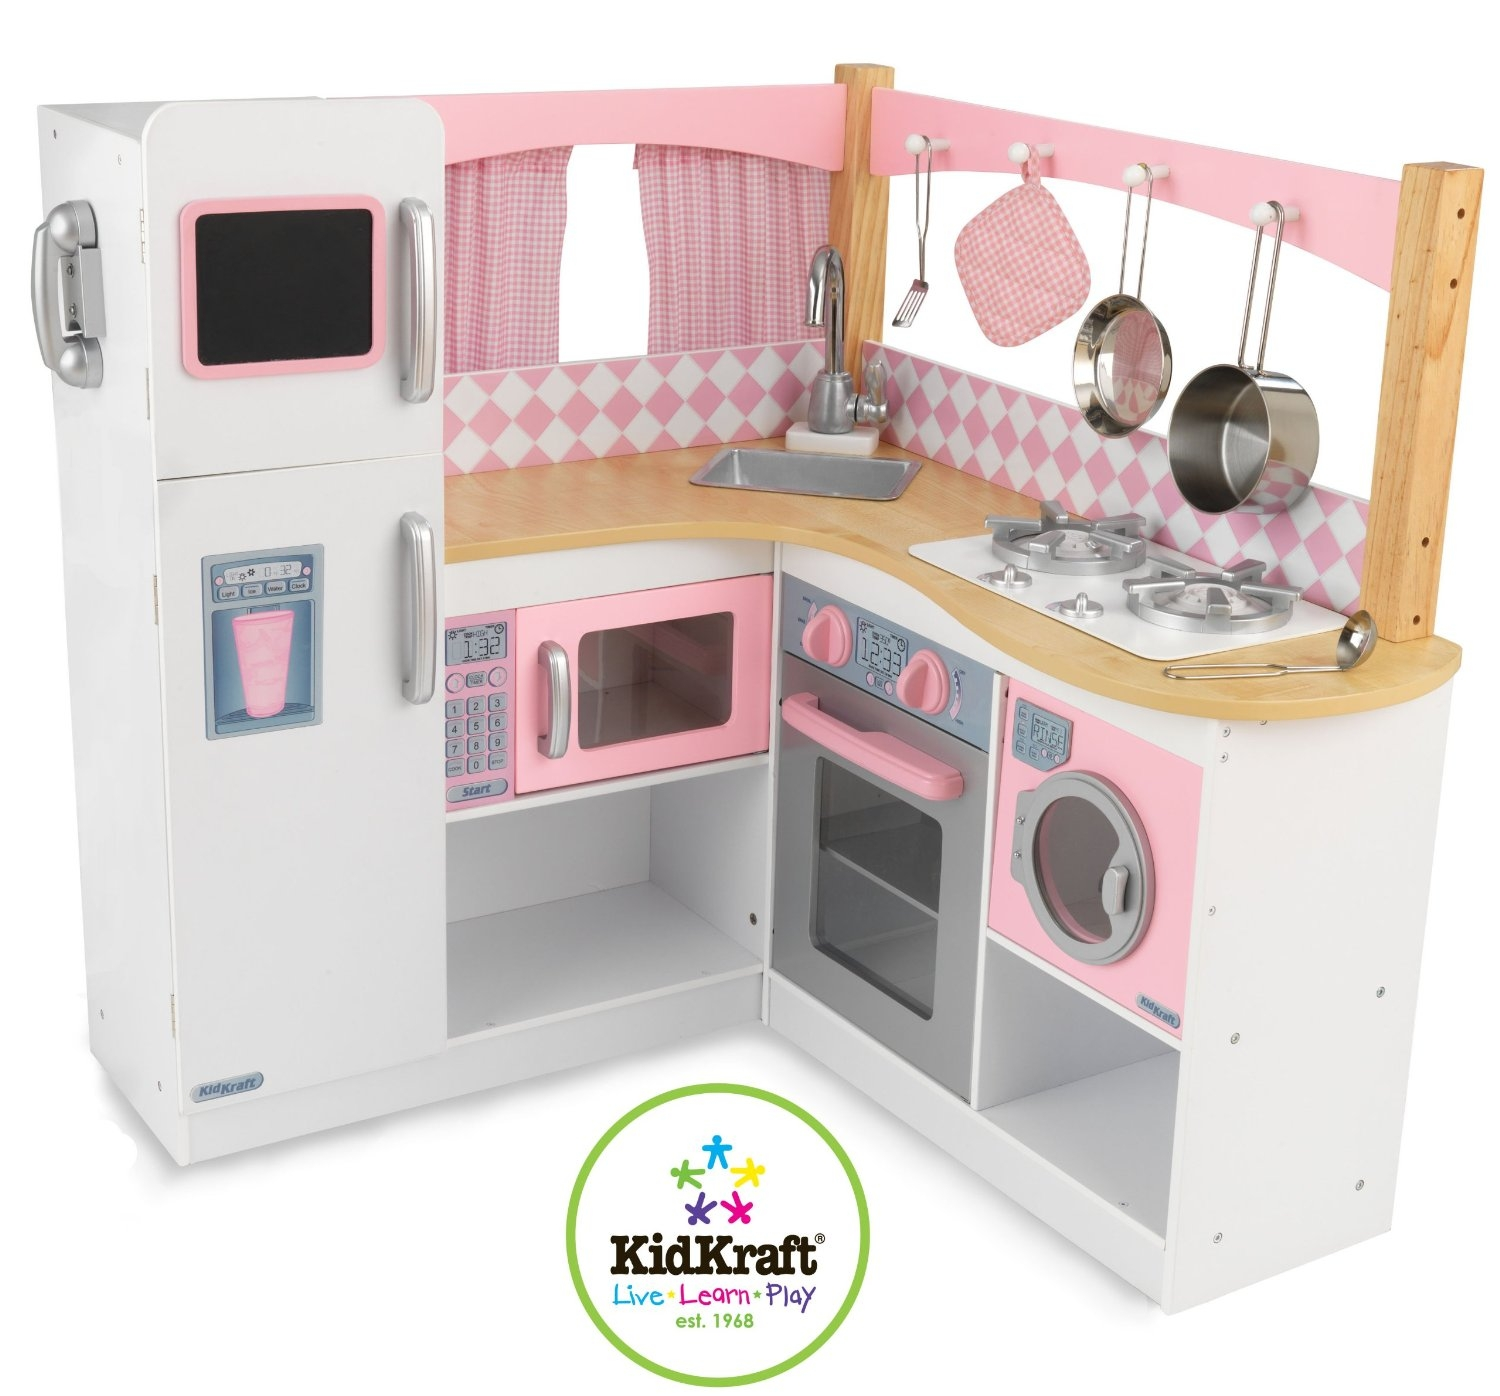 Permalink to Kidkraft Grand Gourmet Corner Wooden Kitchen Playset